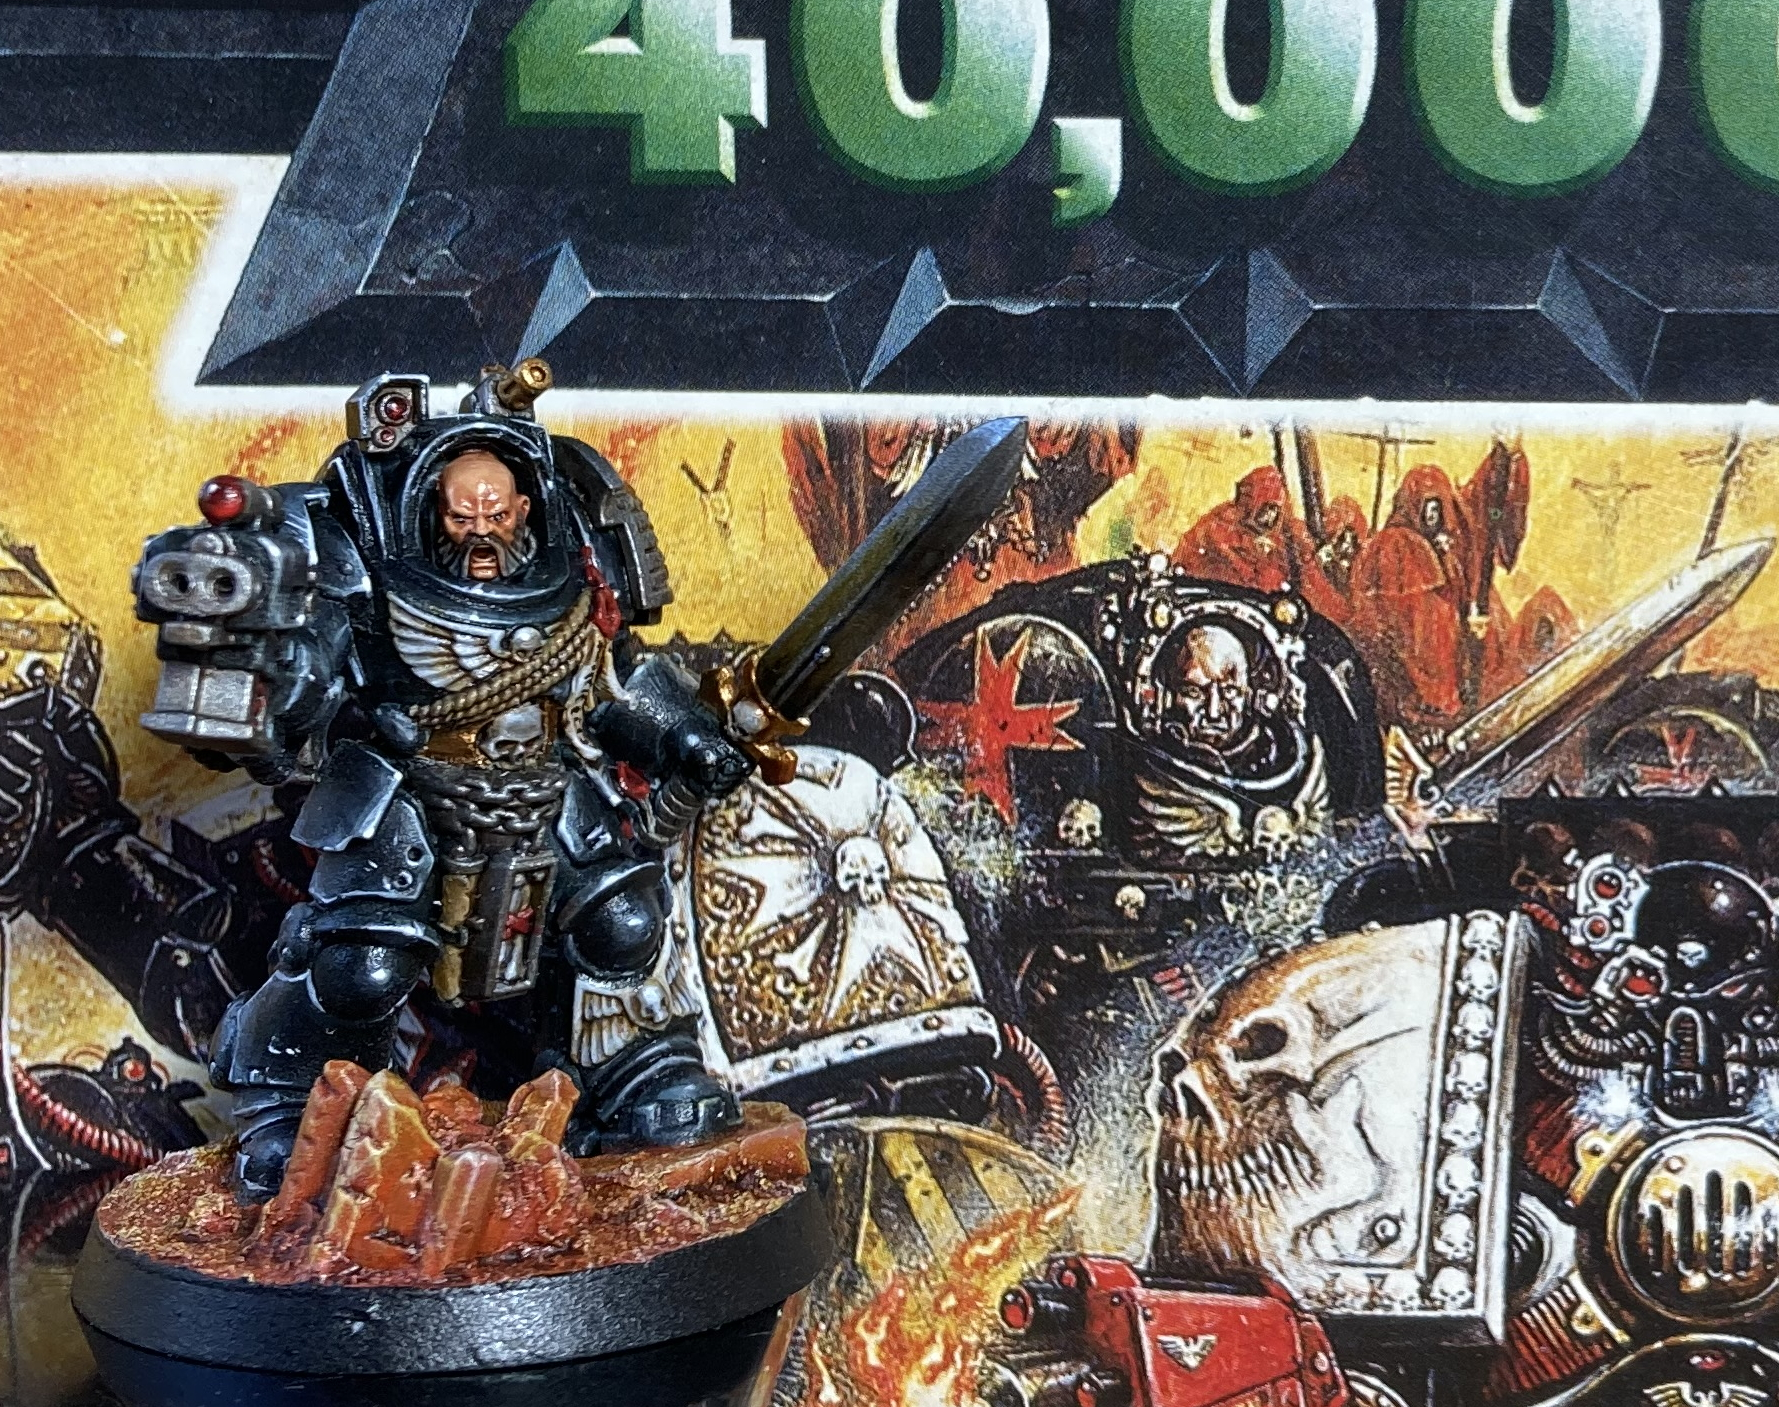 Terminator Knight compared to artwork